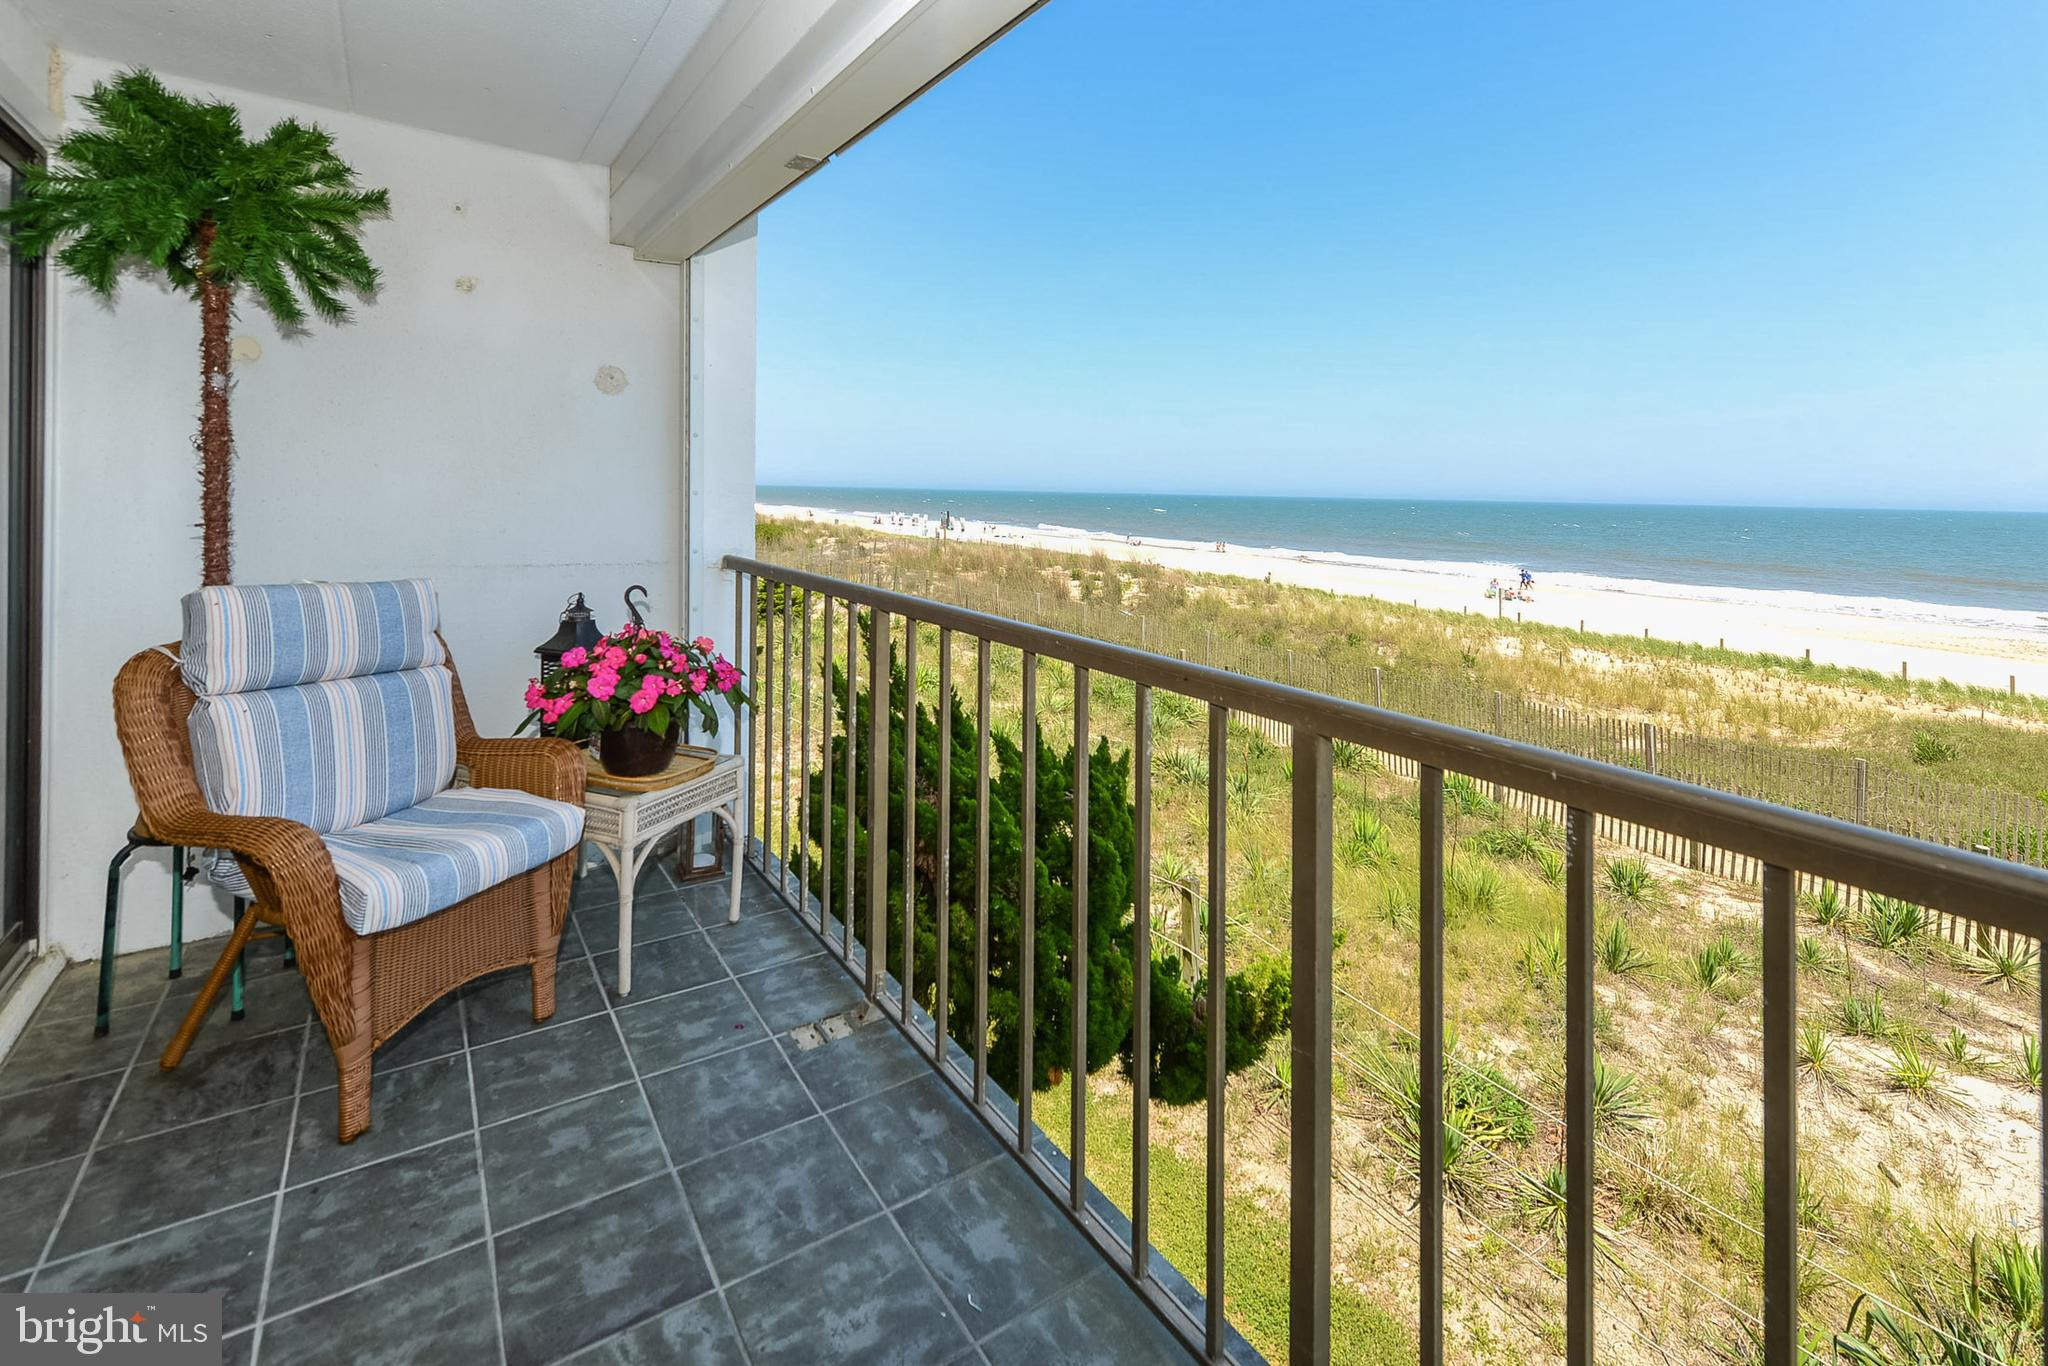 From the private direct oceanfront balcony relax and enjoy the sights & sounds of the beach & ocean